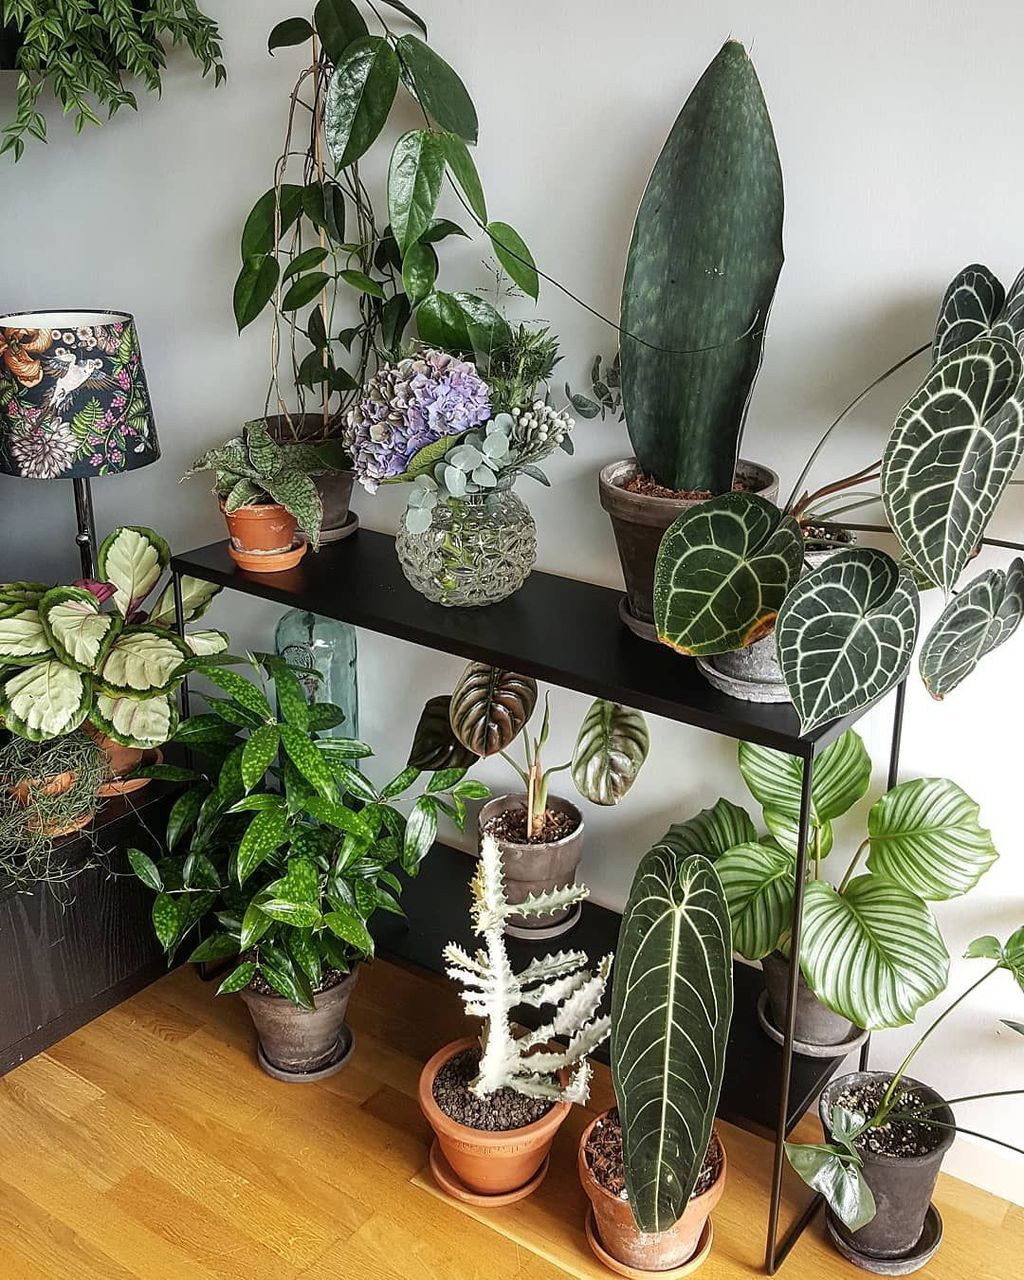 Smart Interior Design Ideas With Plants For Home 23